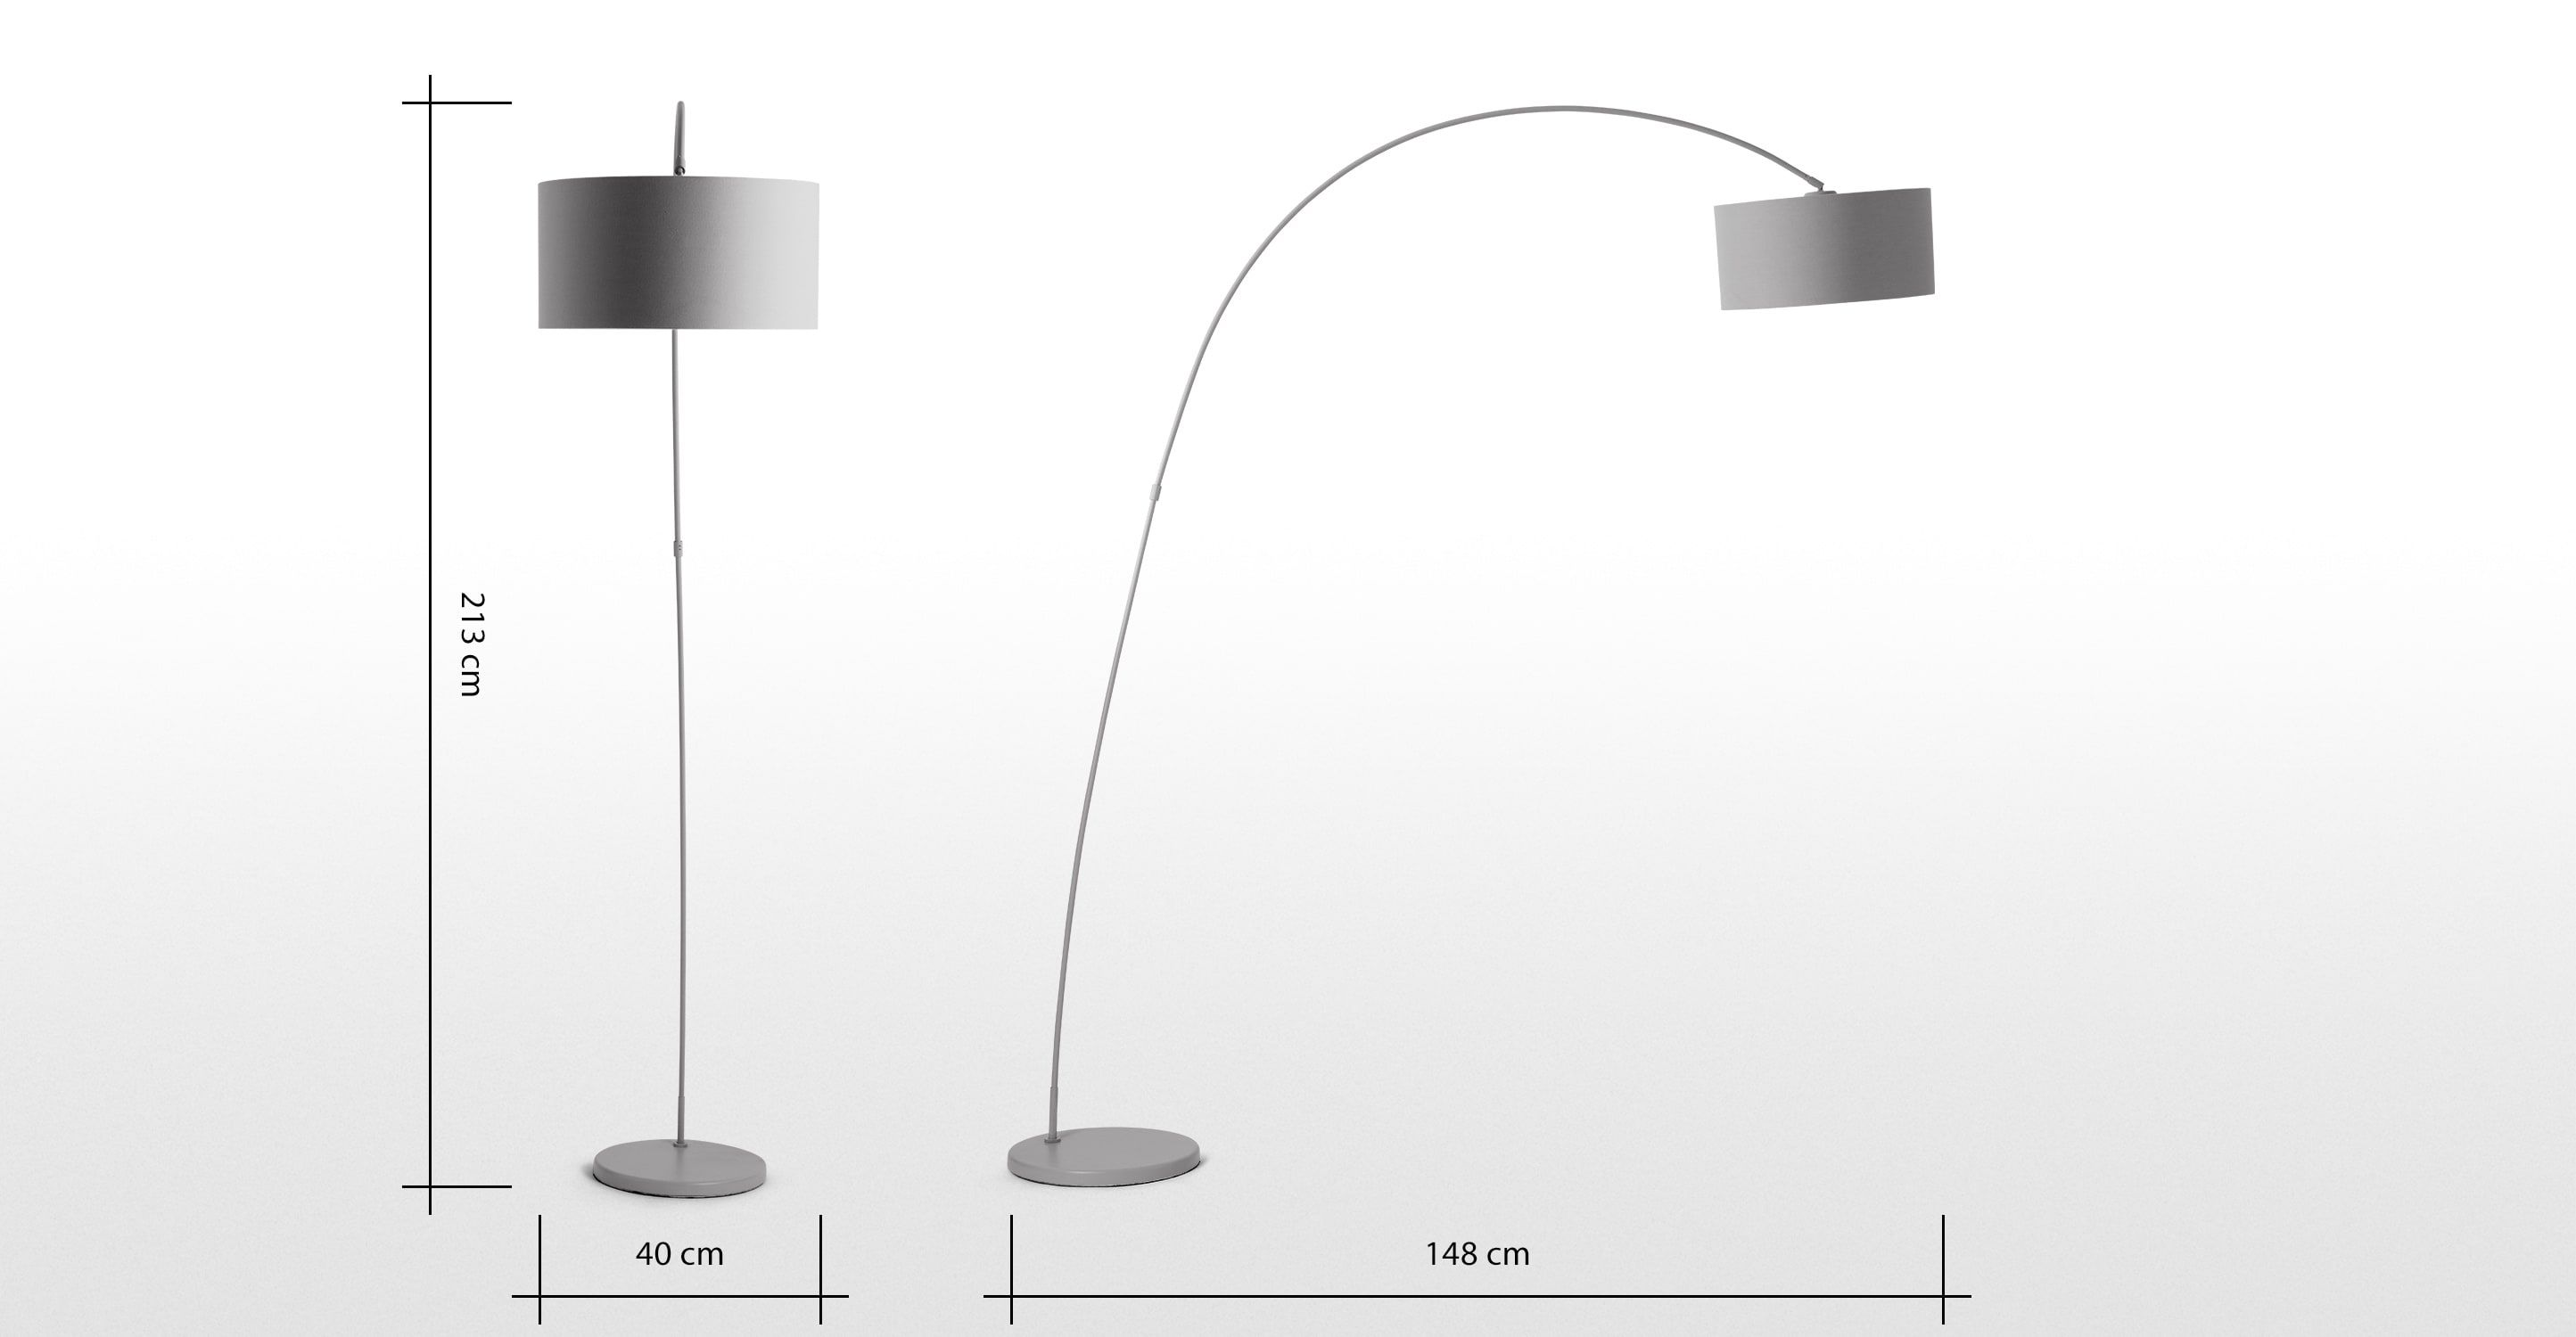 Led Warmes Licht Stehlampe Warmes Licht Gallery Of Lampen Von Ikea